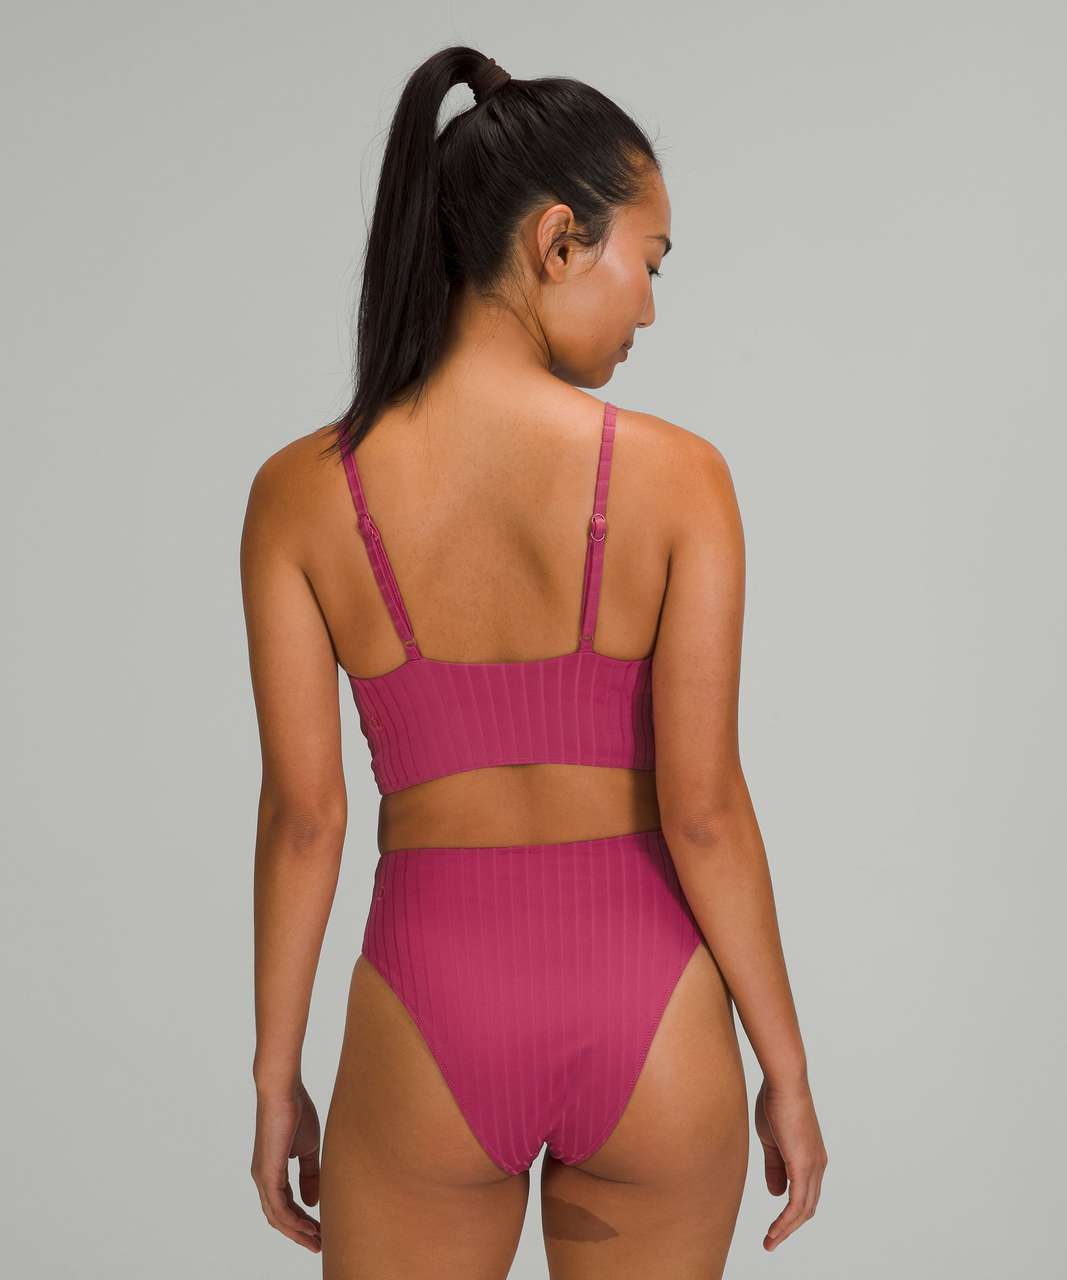 Lululemon Ribbed High-Neck Long-Line Top *B/C Cups - Pink Lychee